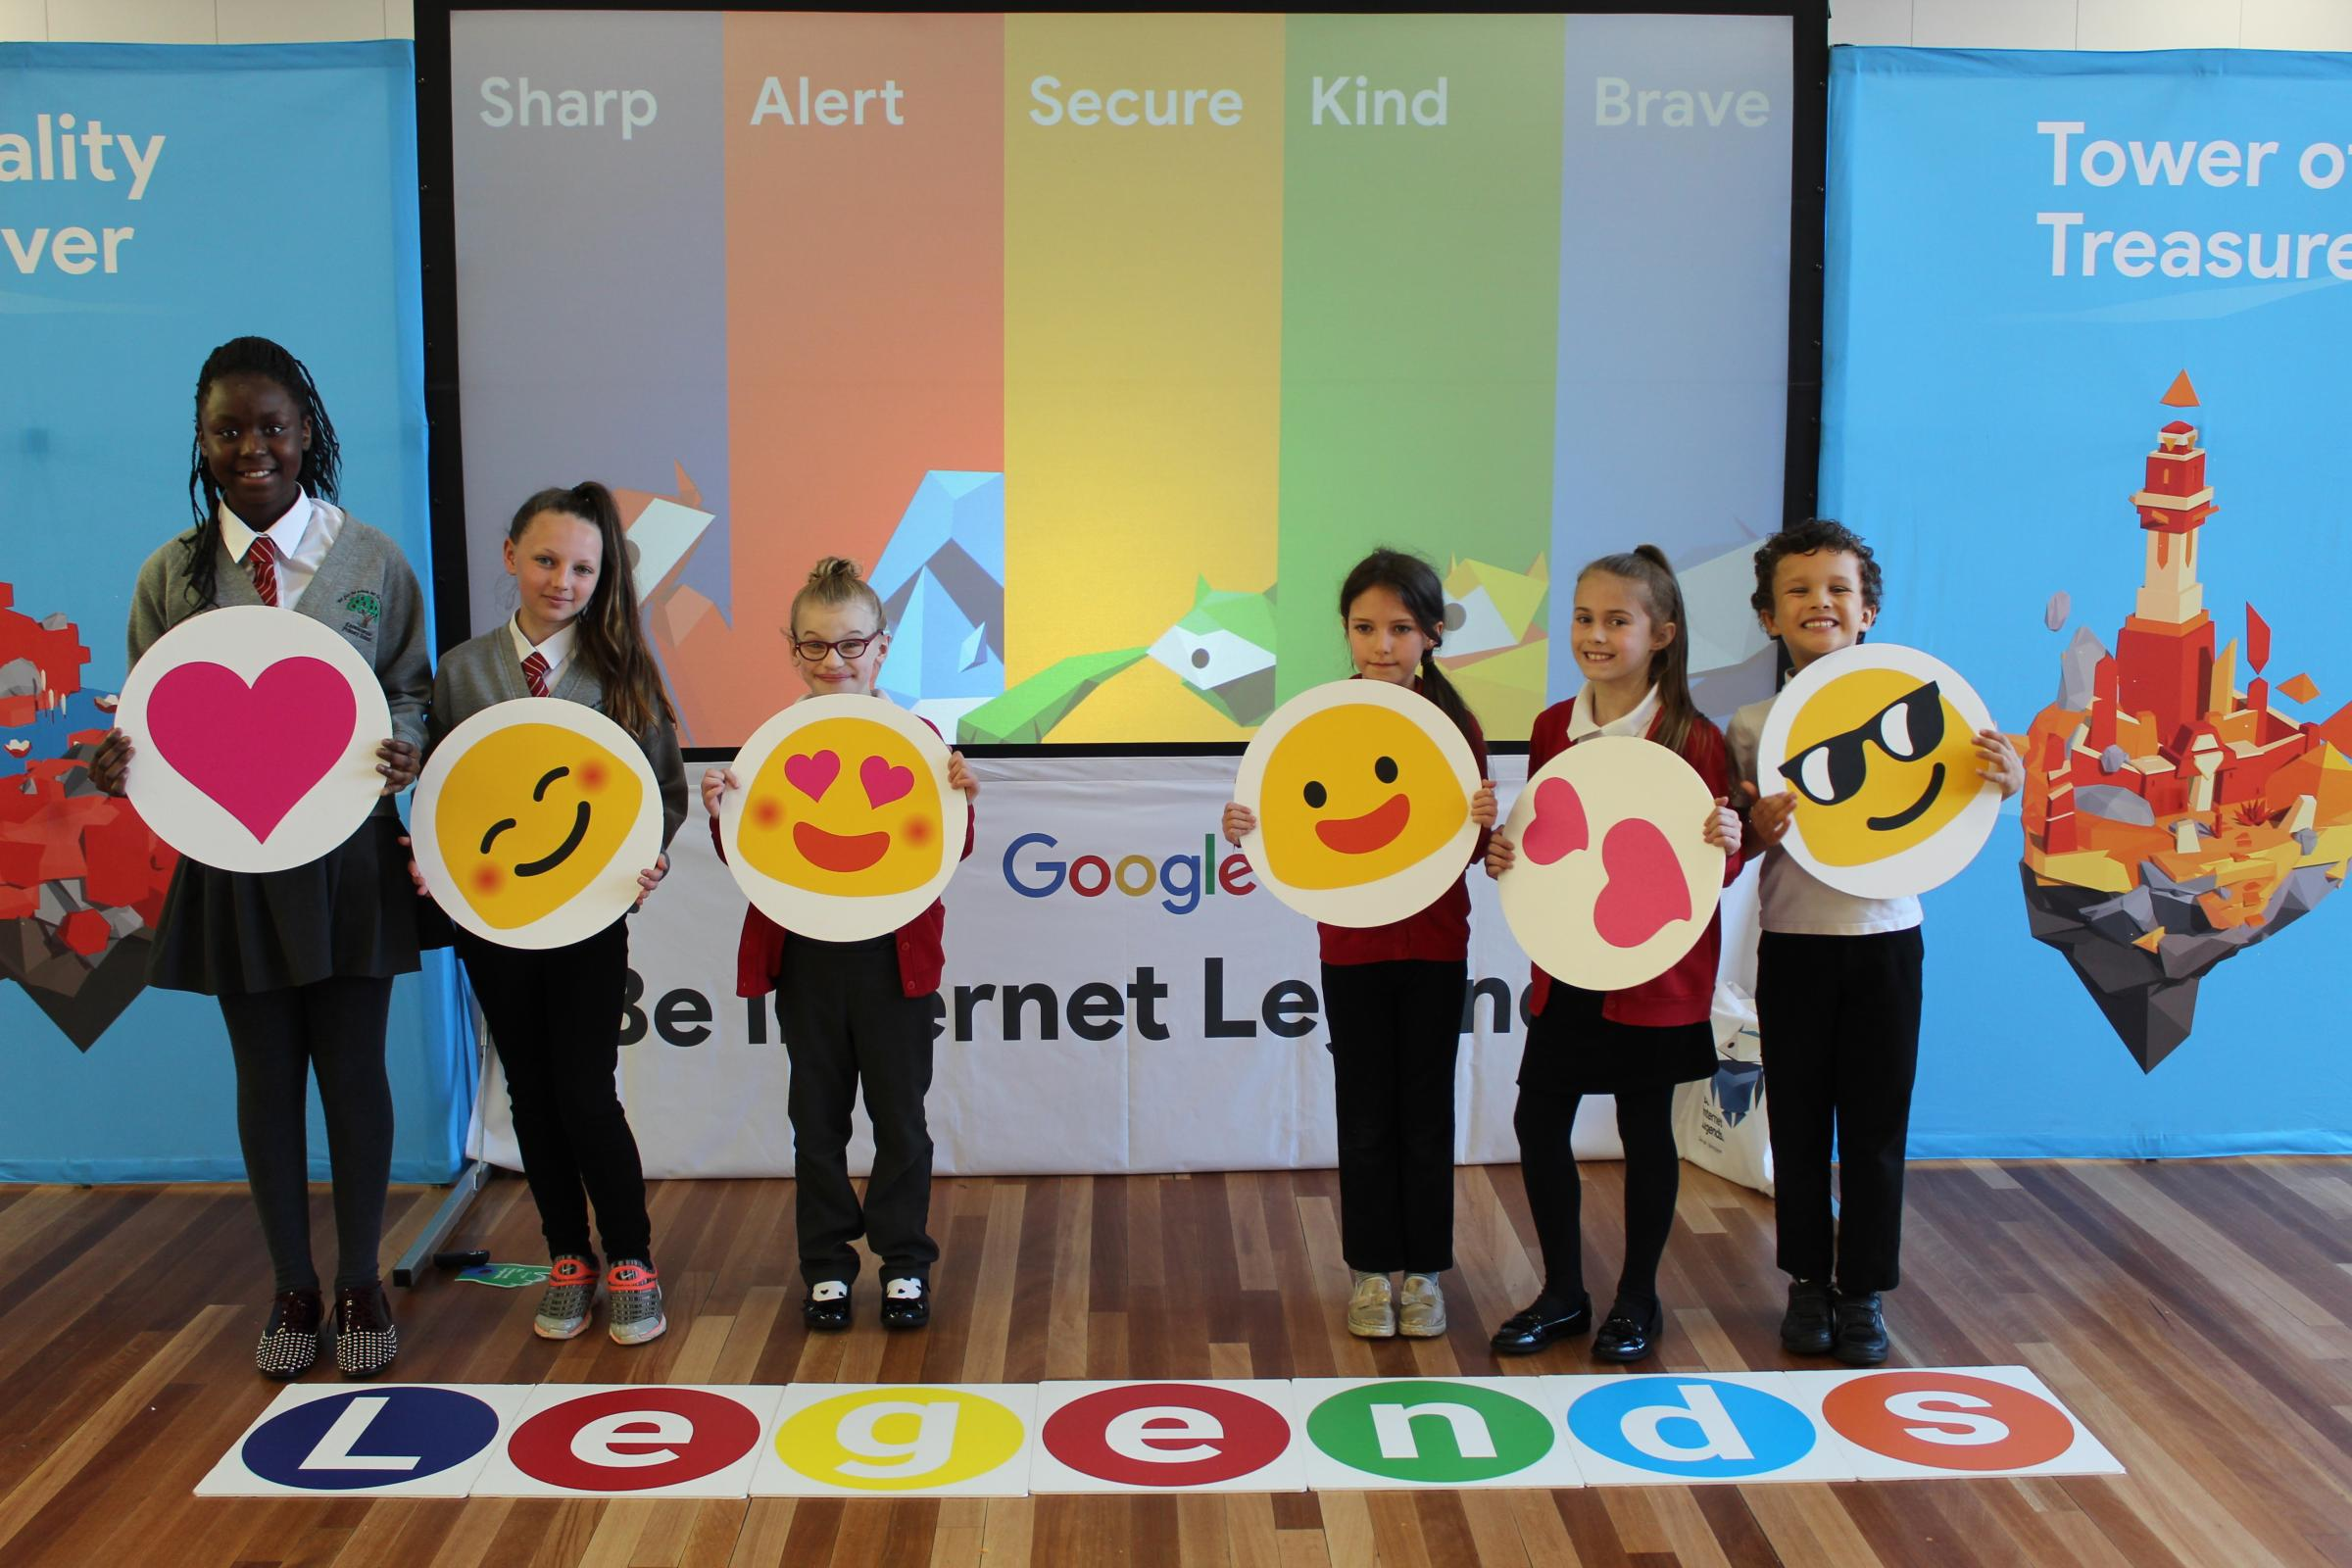 Knowleswood Primary hosts Google's Be Internet Legends event